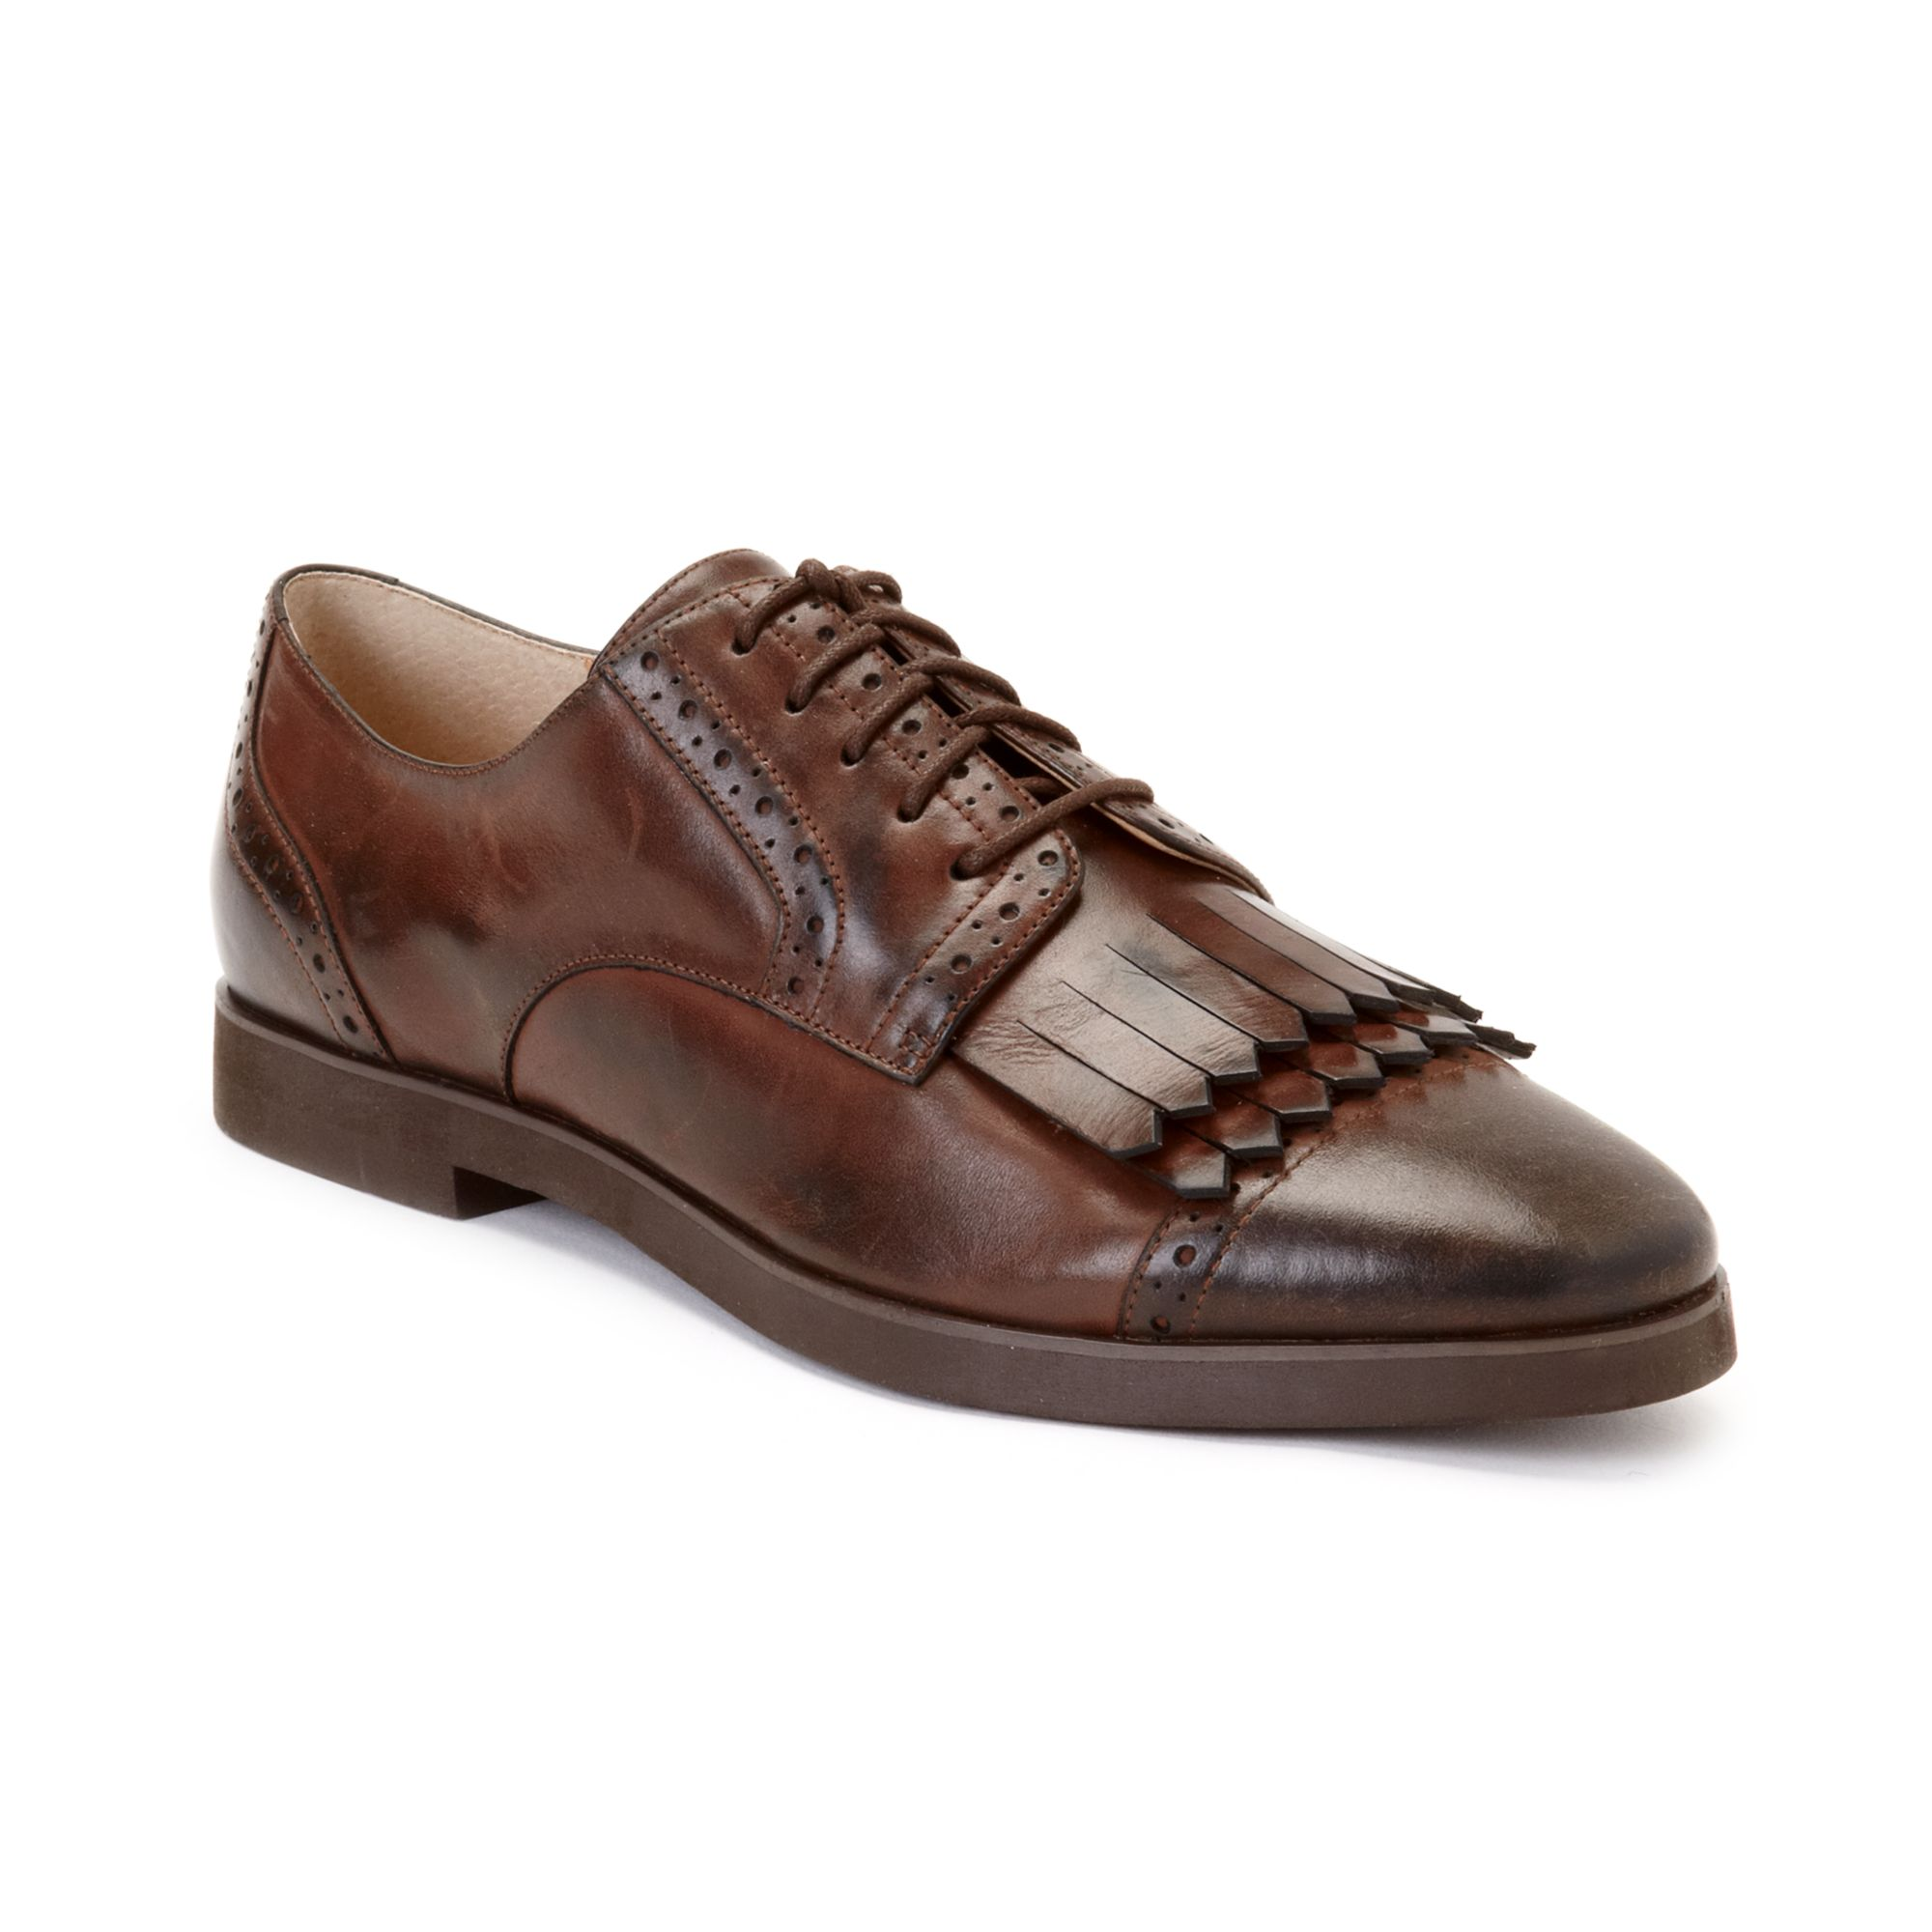 Enzo Angiolini Fireball Lace Up Oxfords In Brown Leather